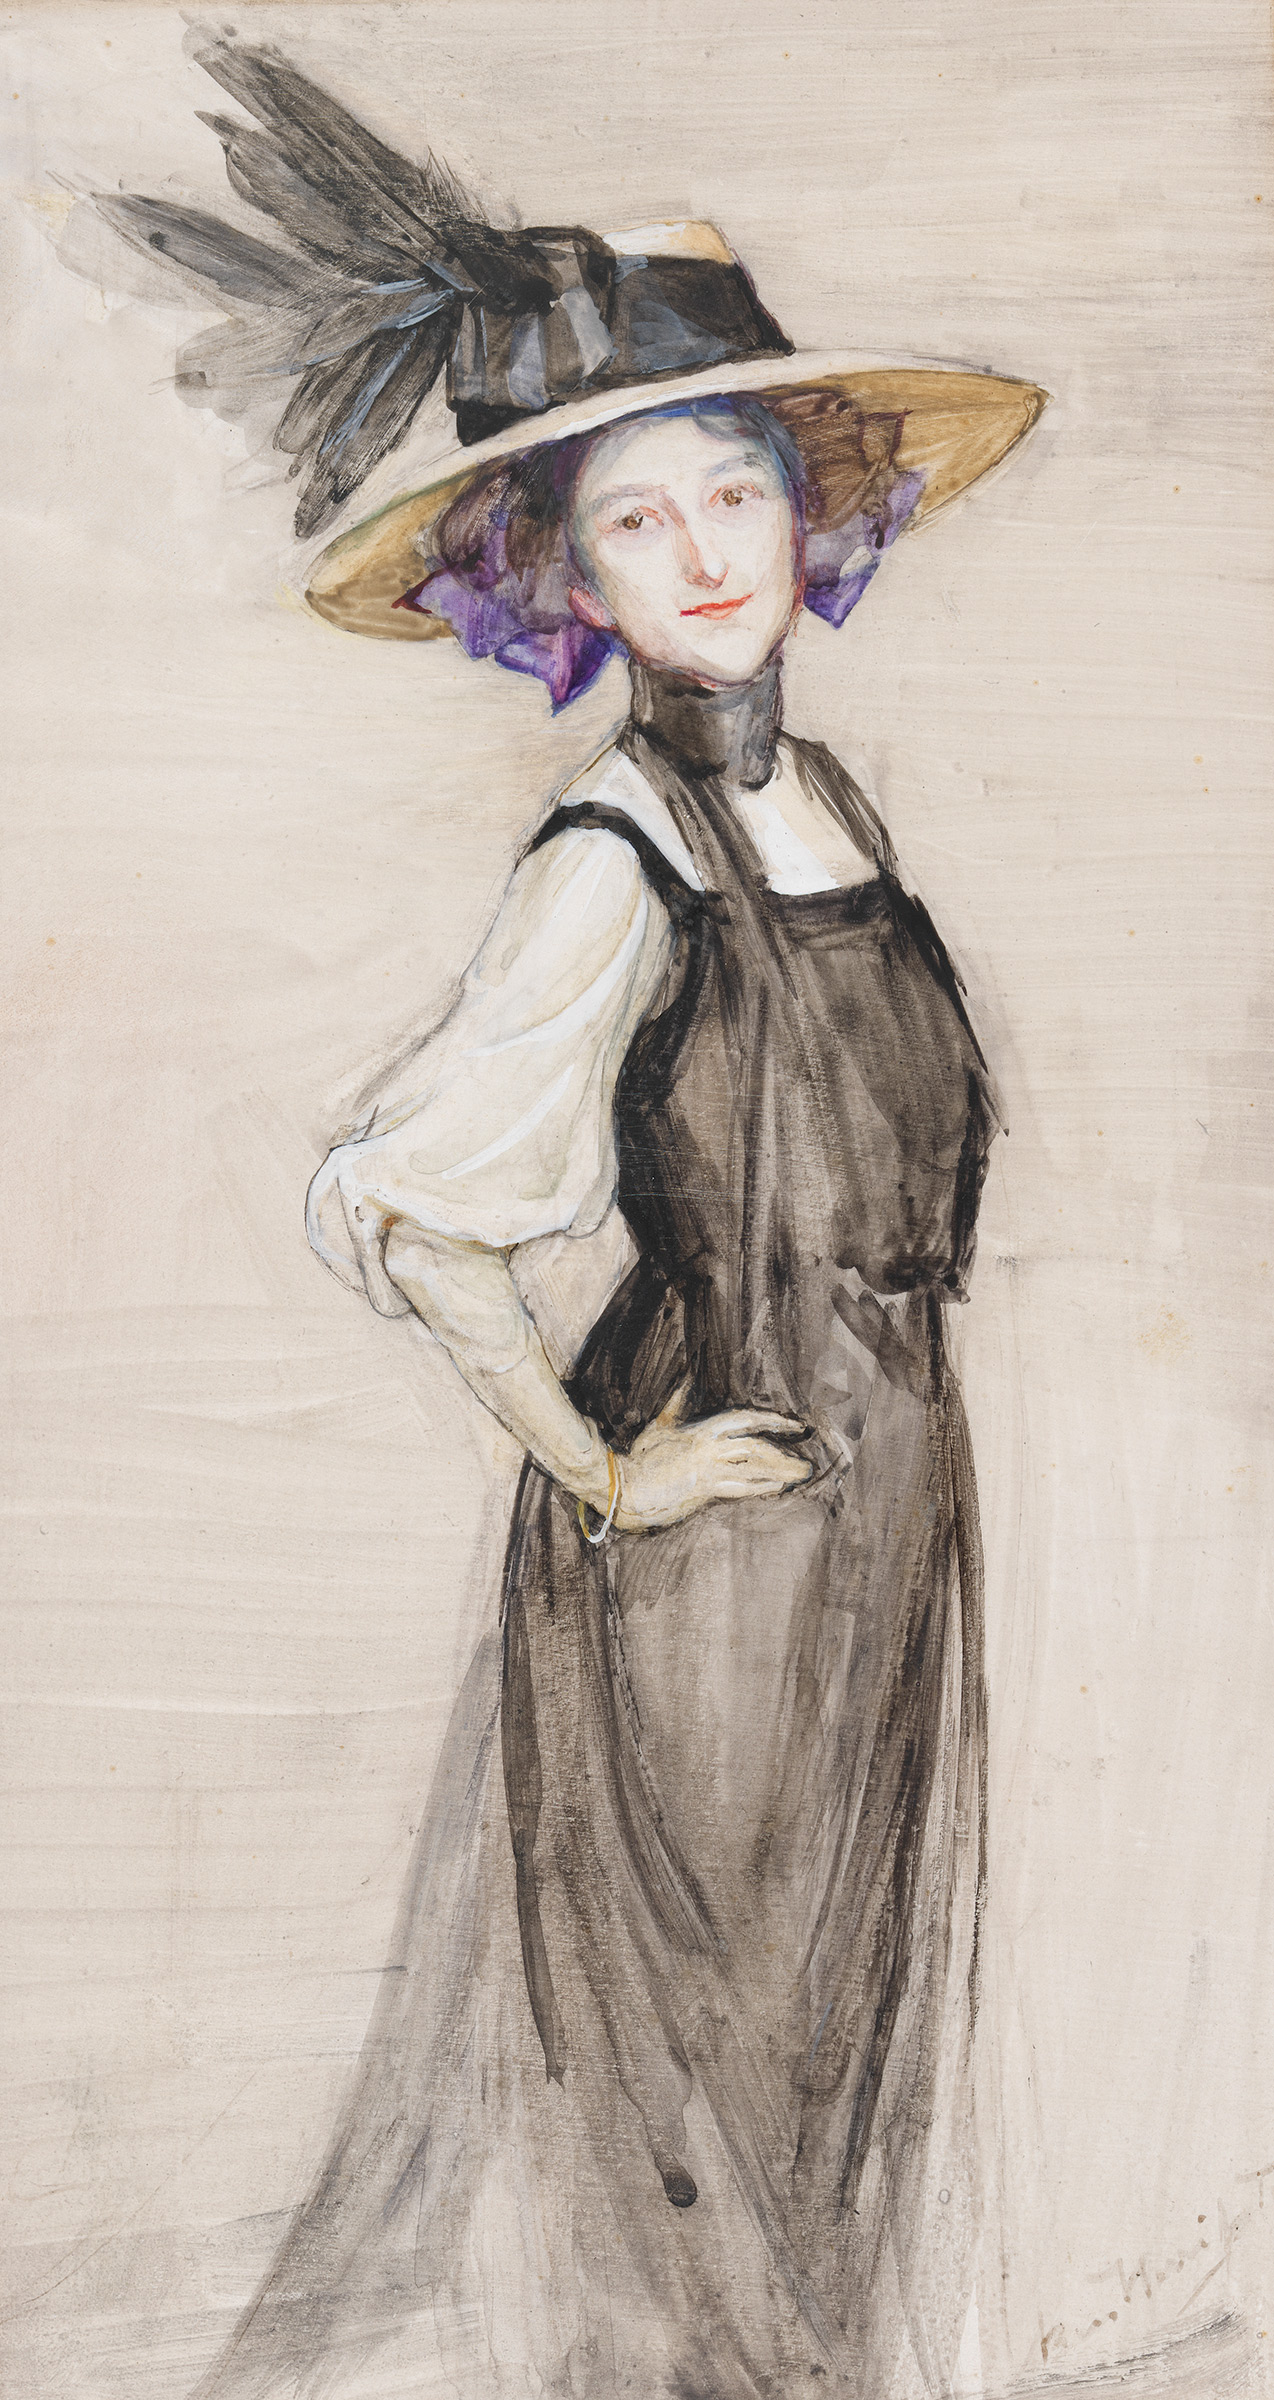 Self portrait, 1909 by Bess Norriss Tait